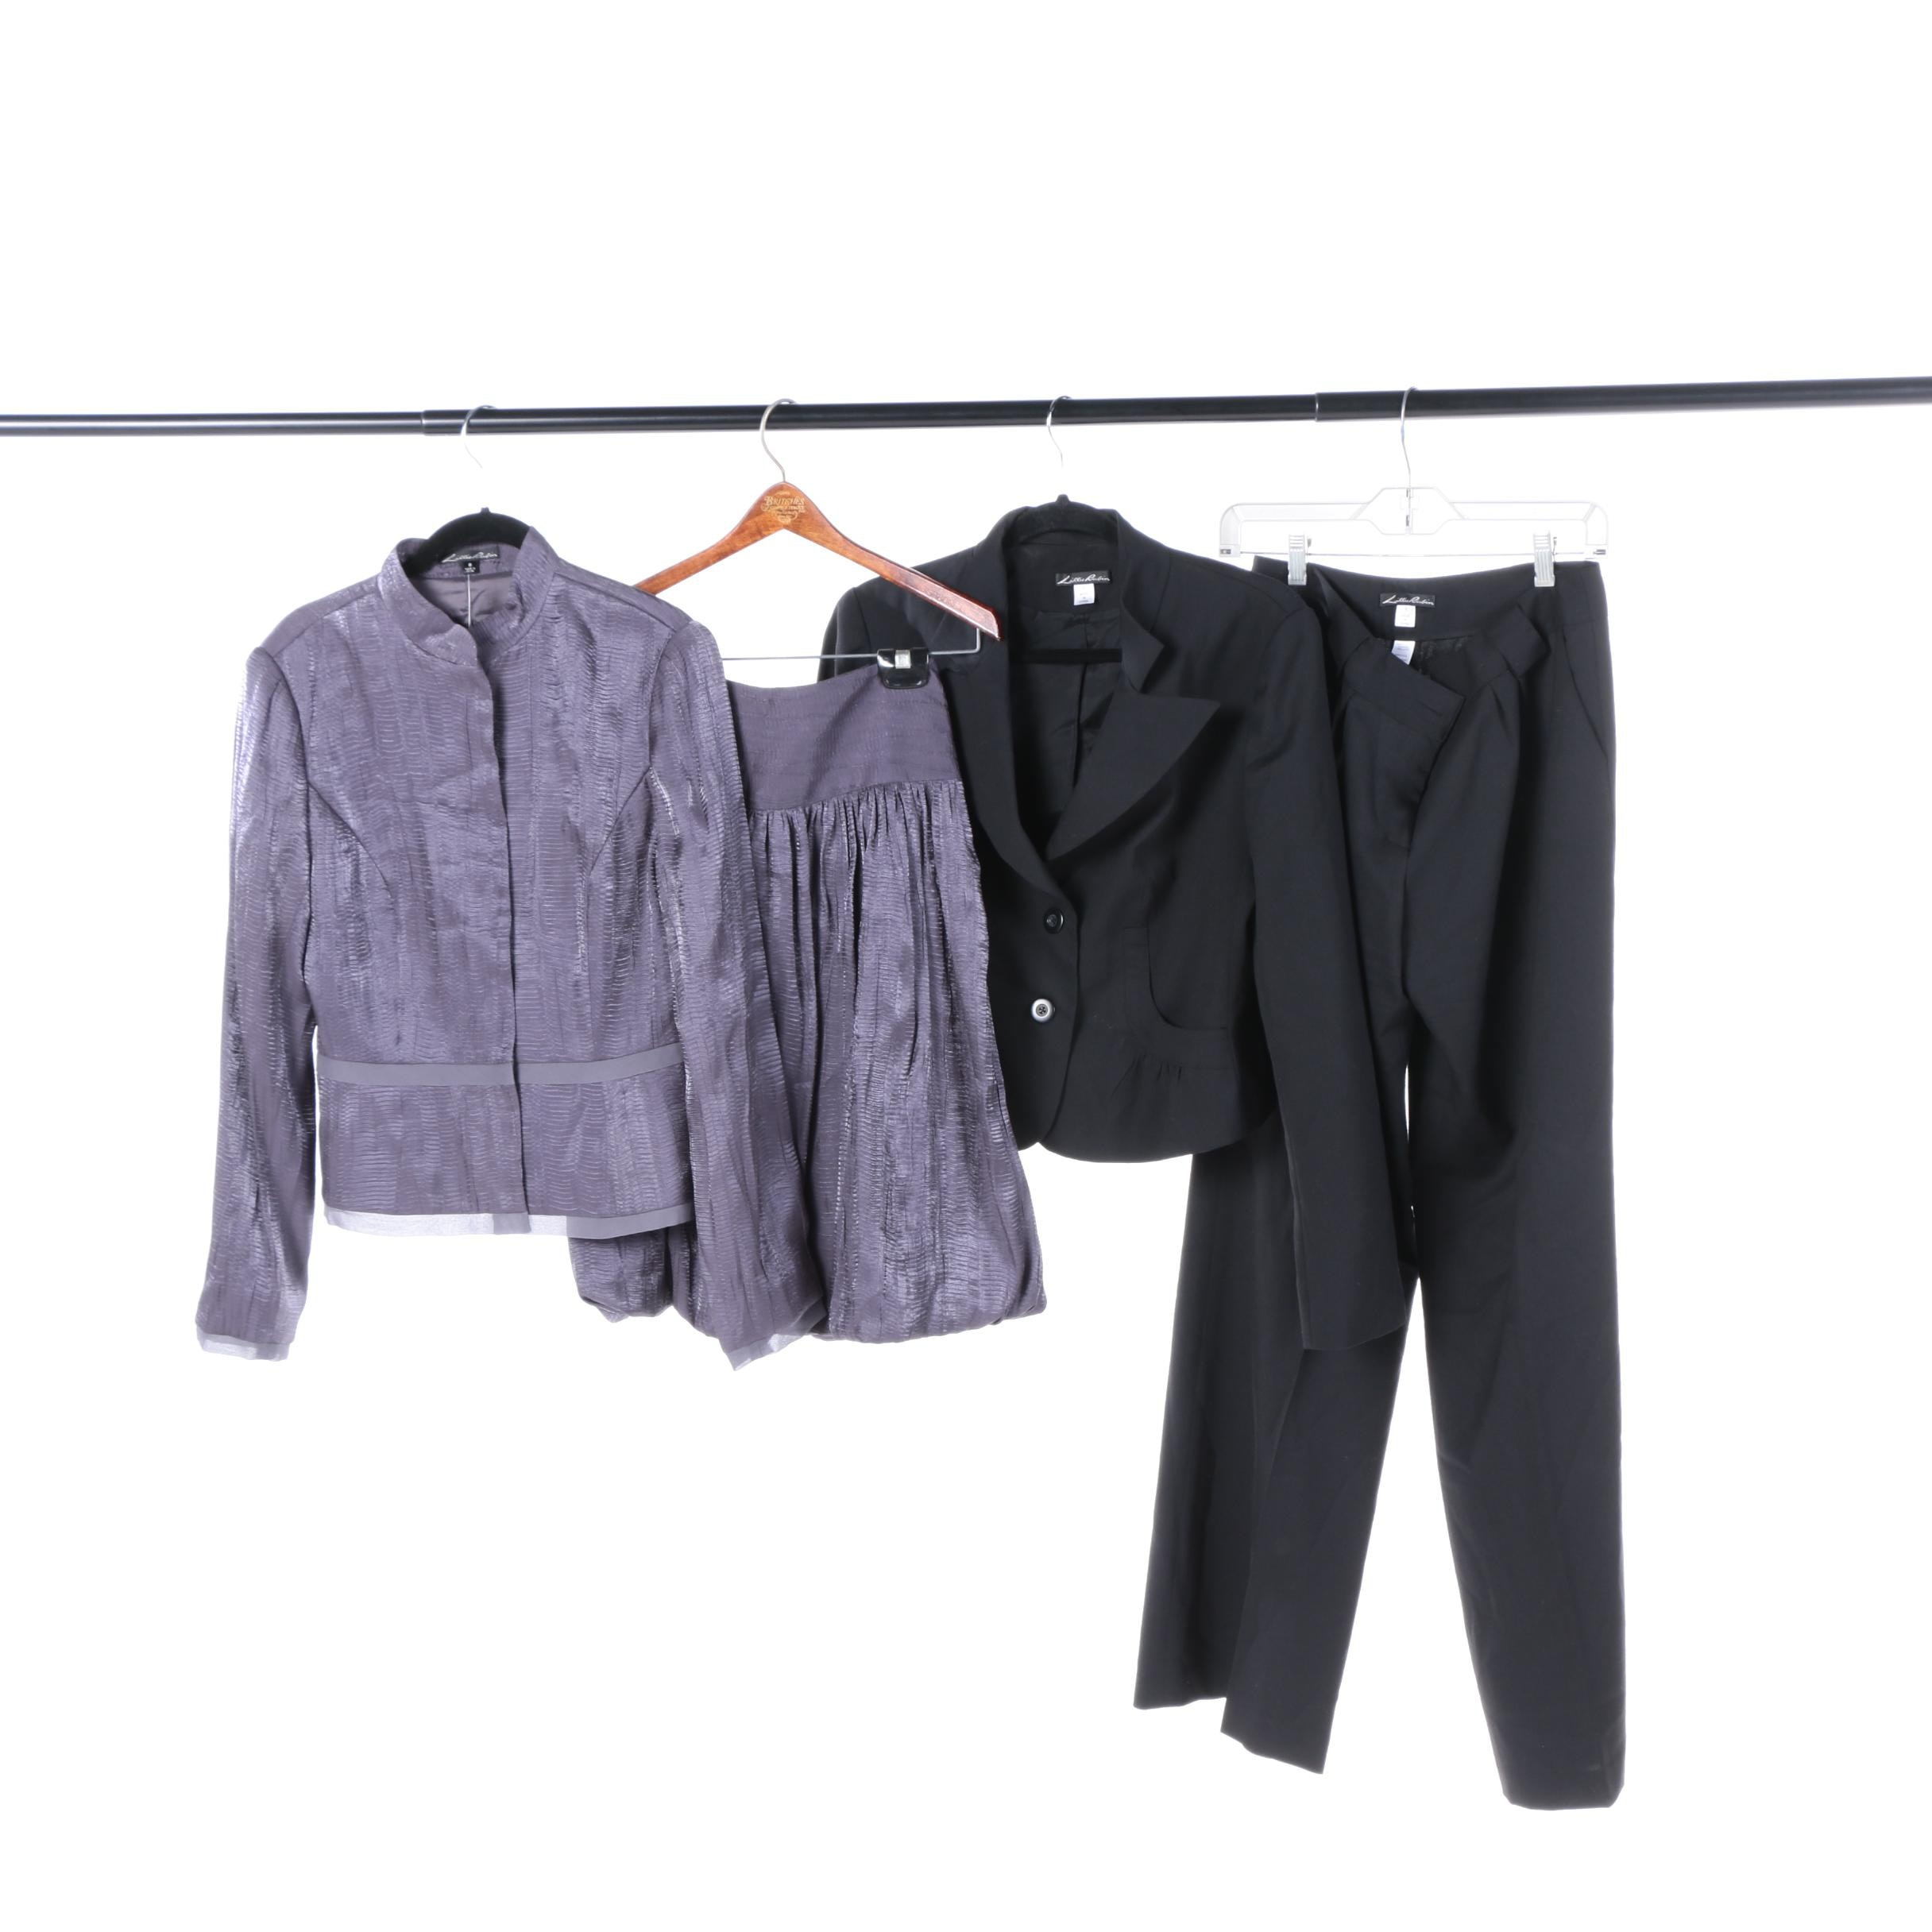 Lillie Rubin Pant and Skirt Suits